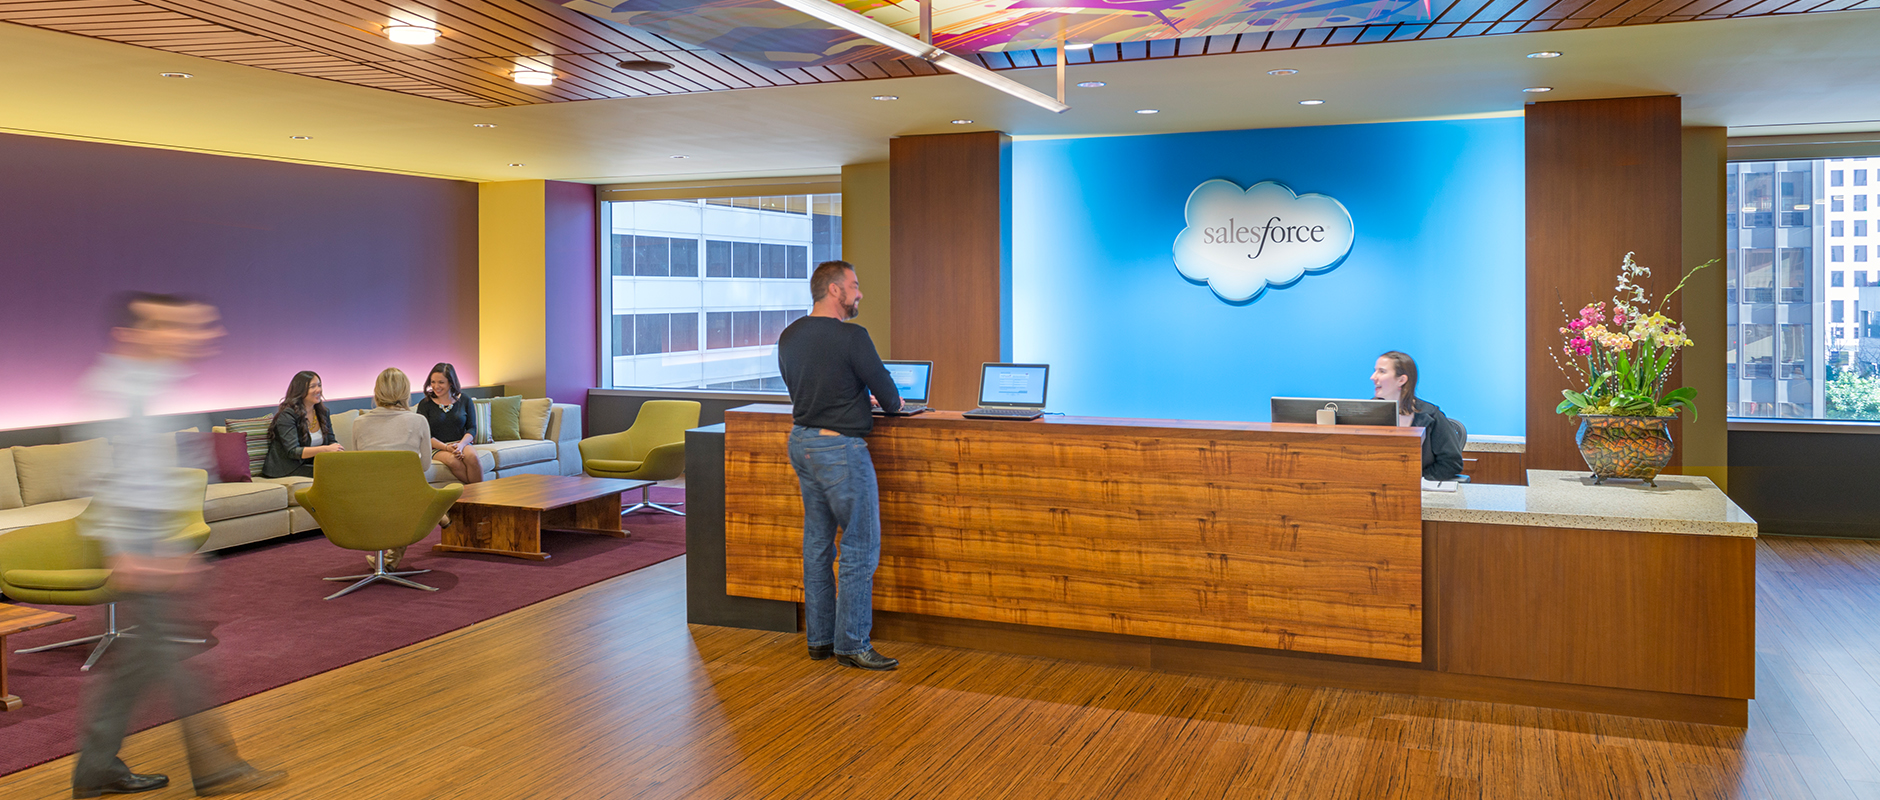 10 Tips About How To Check Salesforce Edition